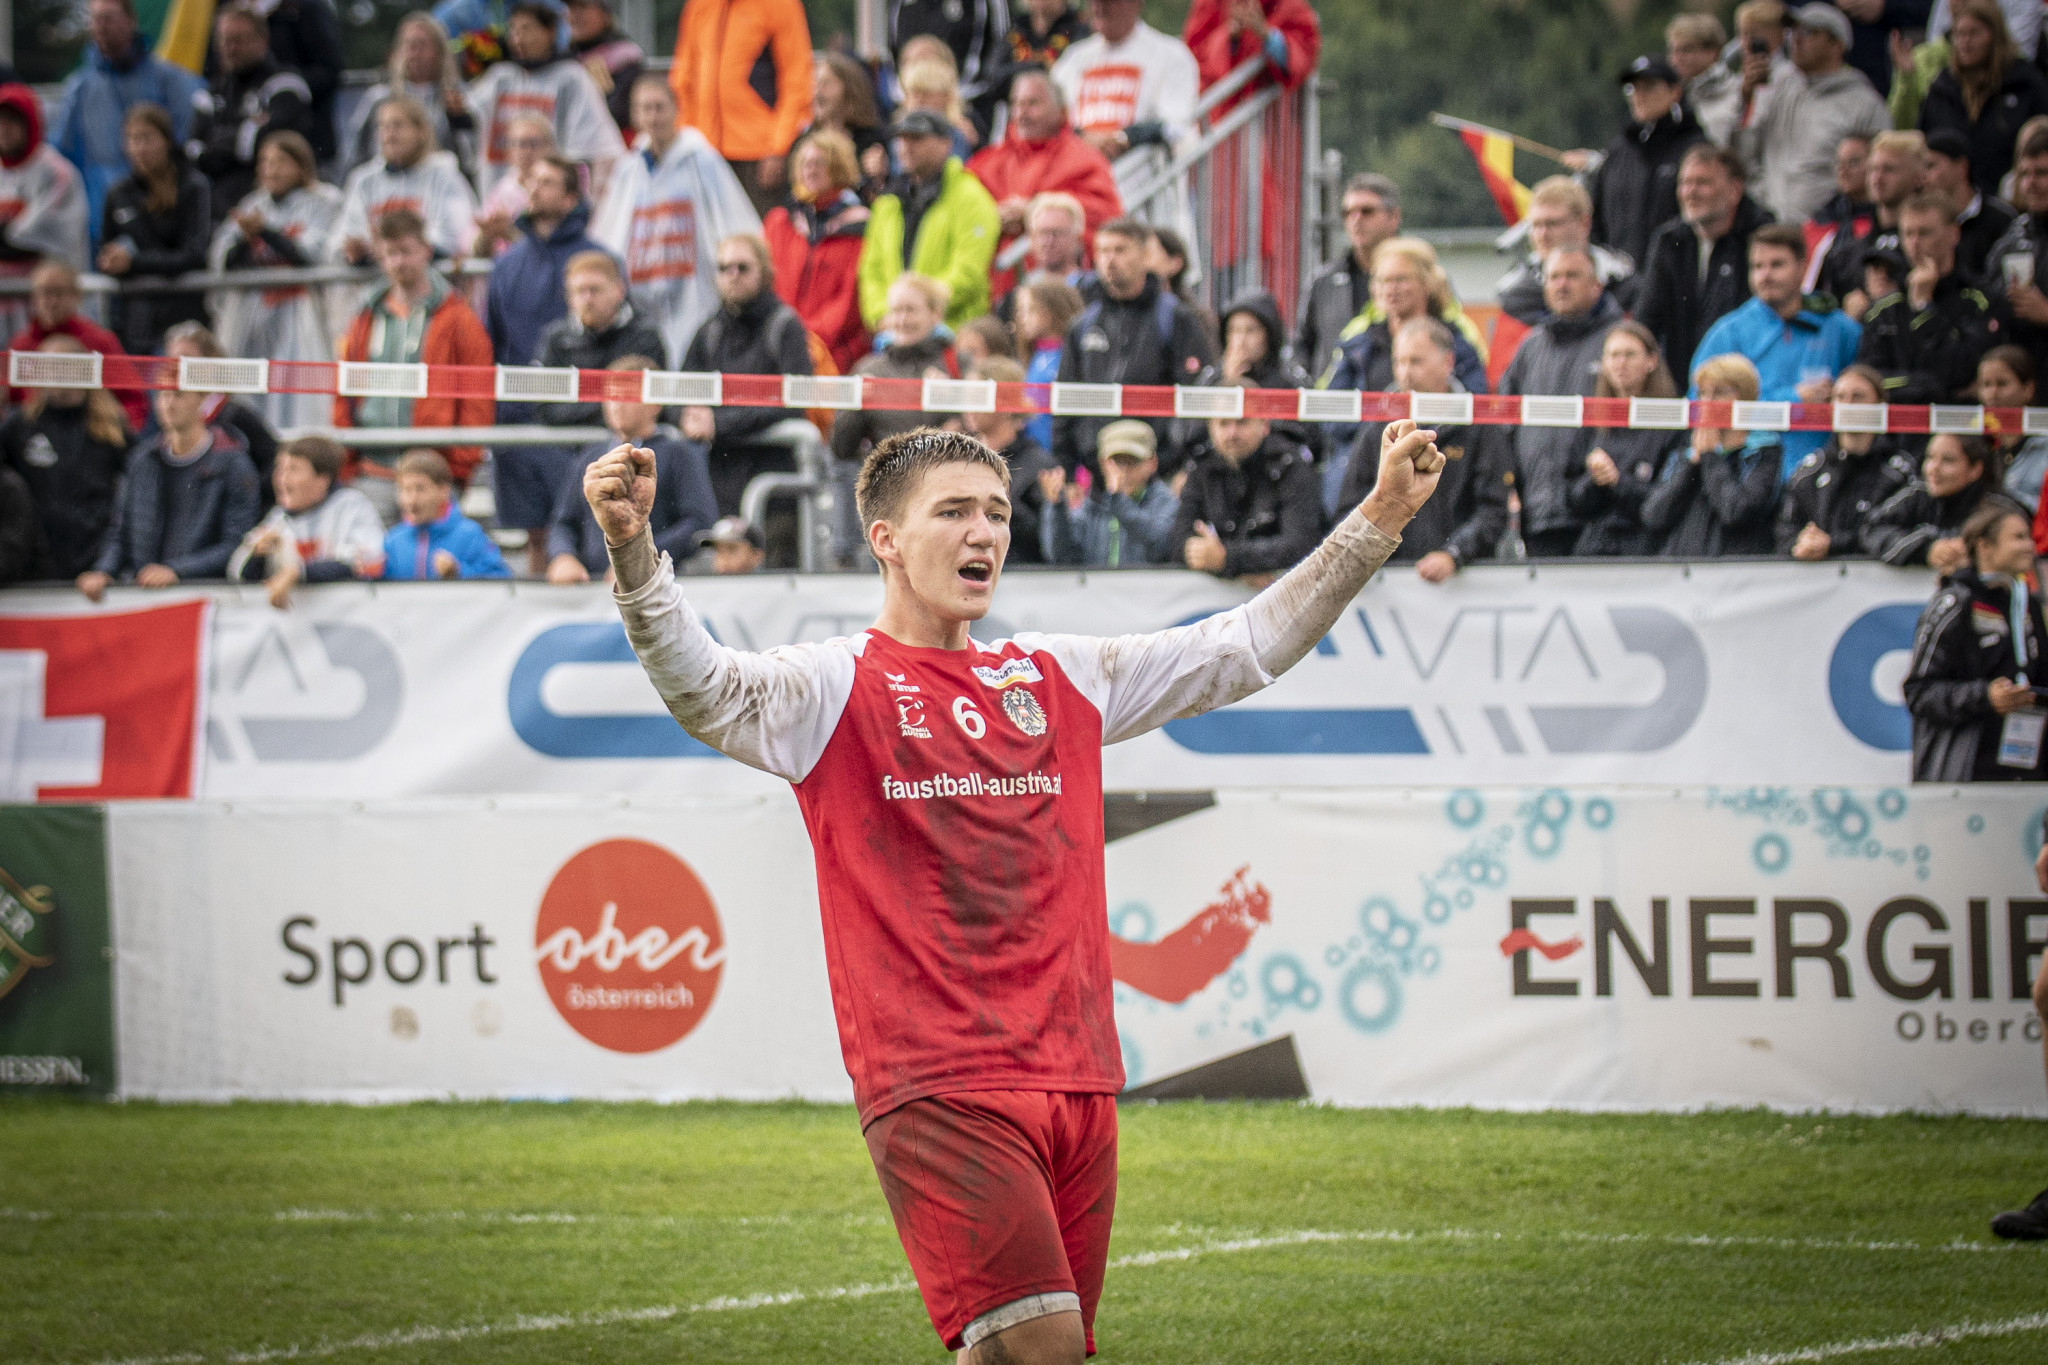 Austria won as many points as Germany in the men's under-18 World Championship final, but lost ©IFA